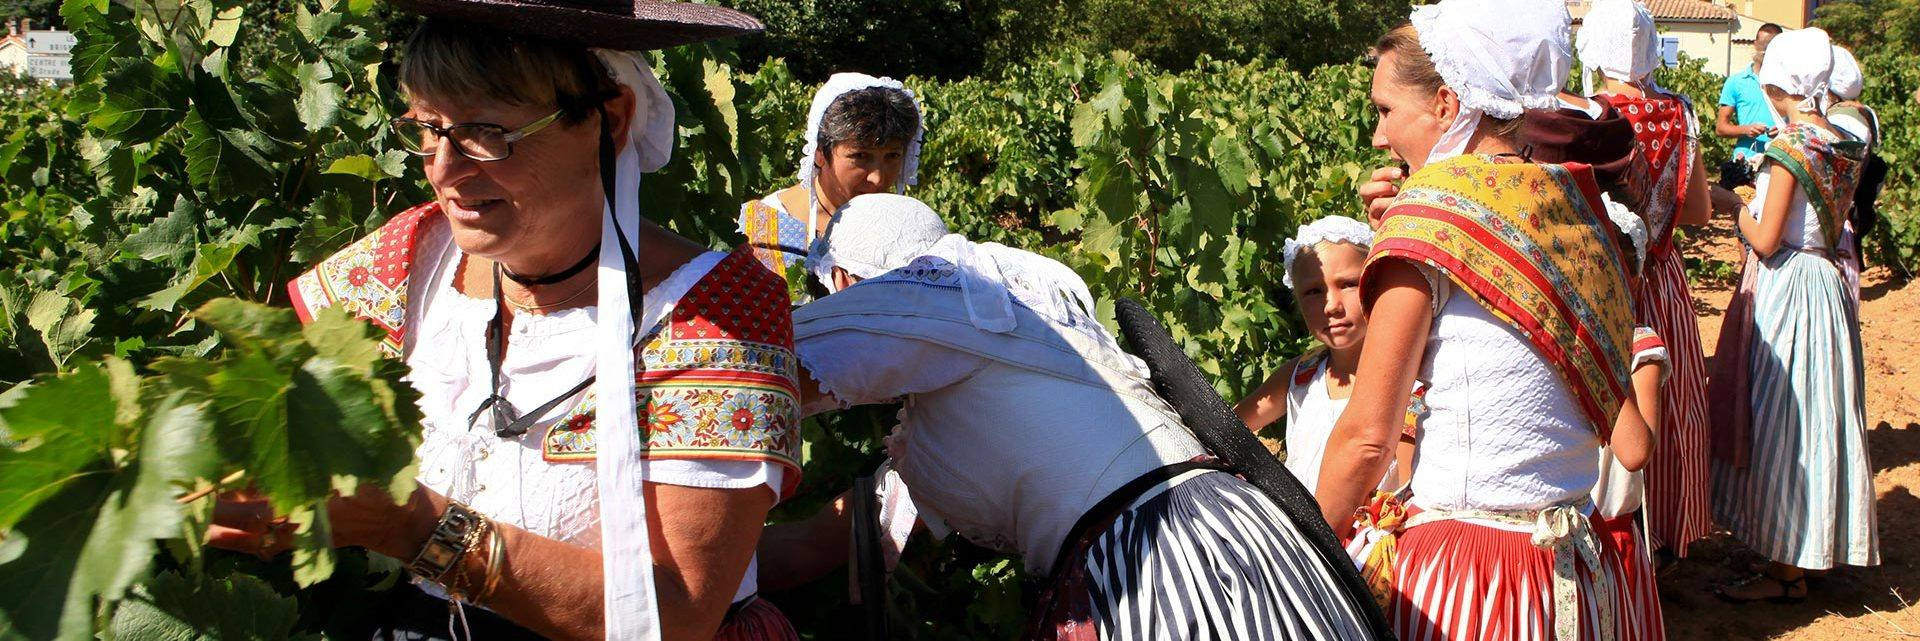 Grape harvest festival in Montfort sur Argens